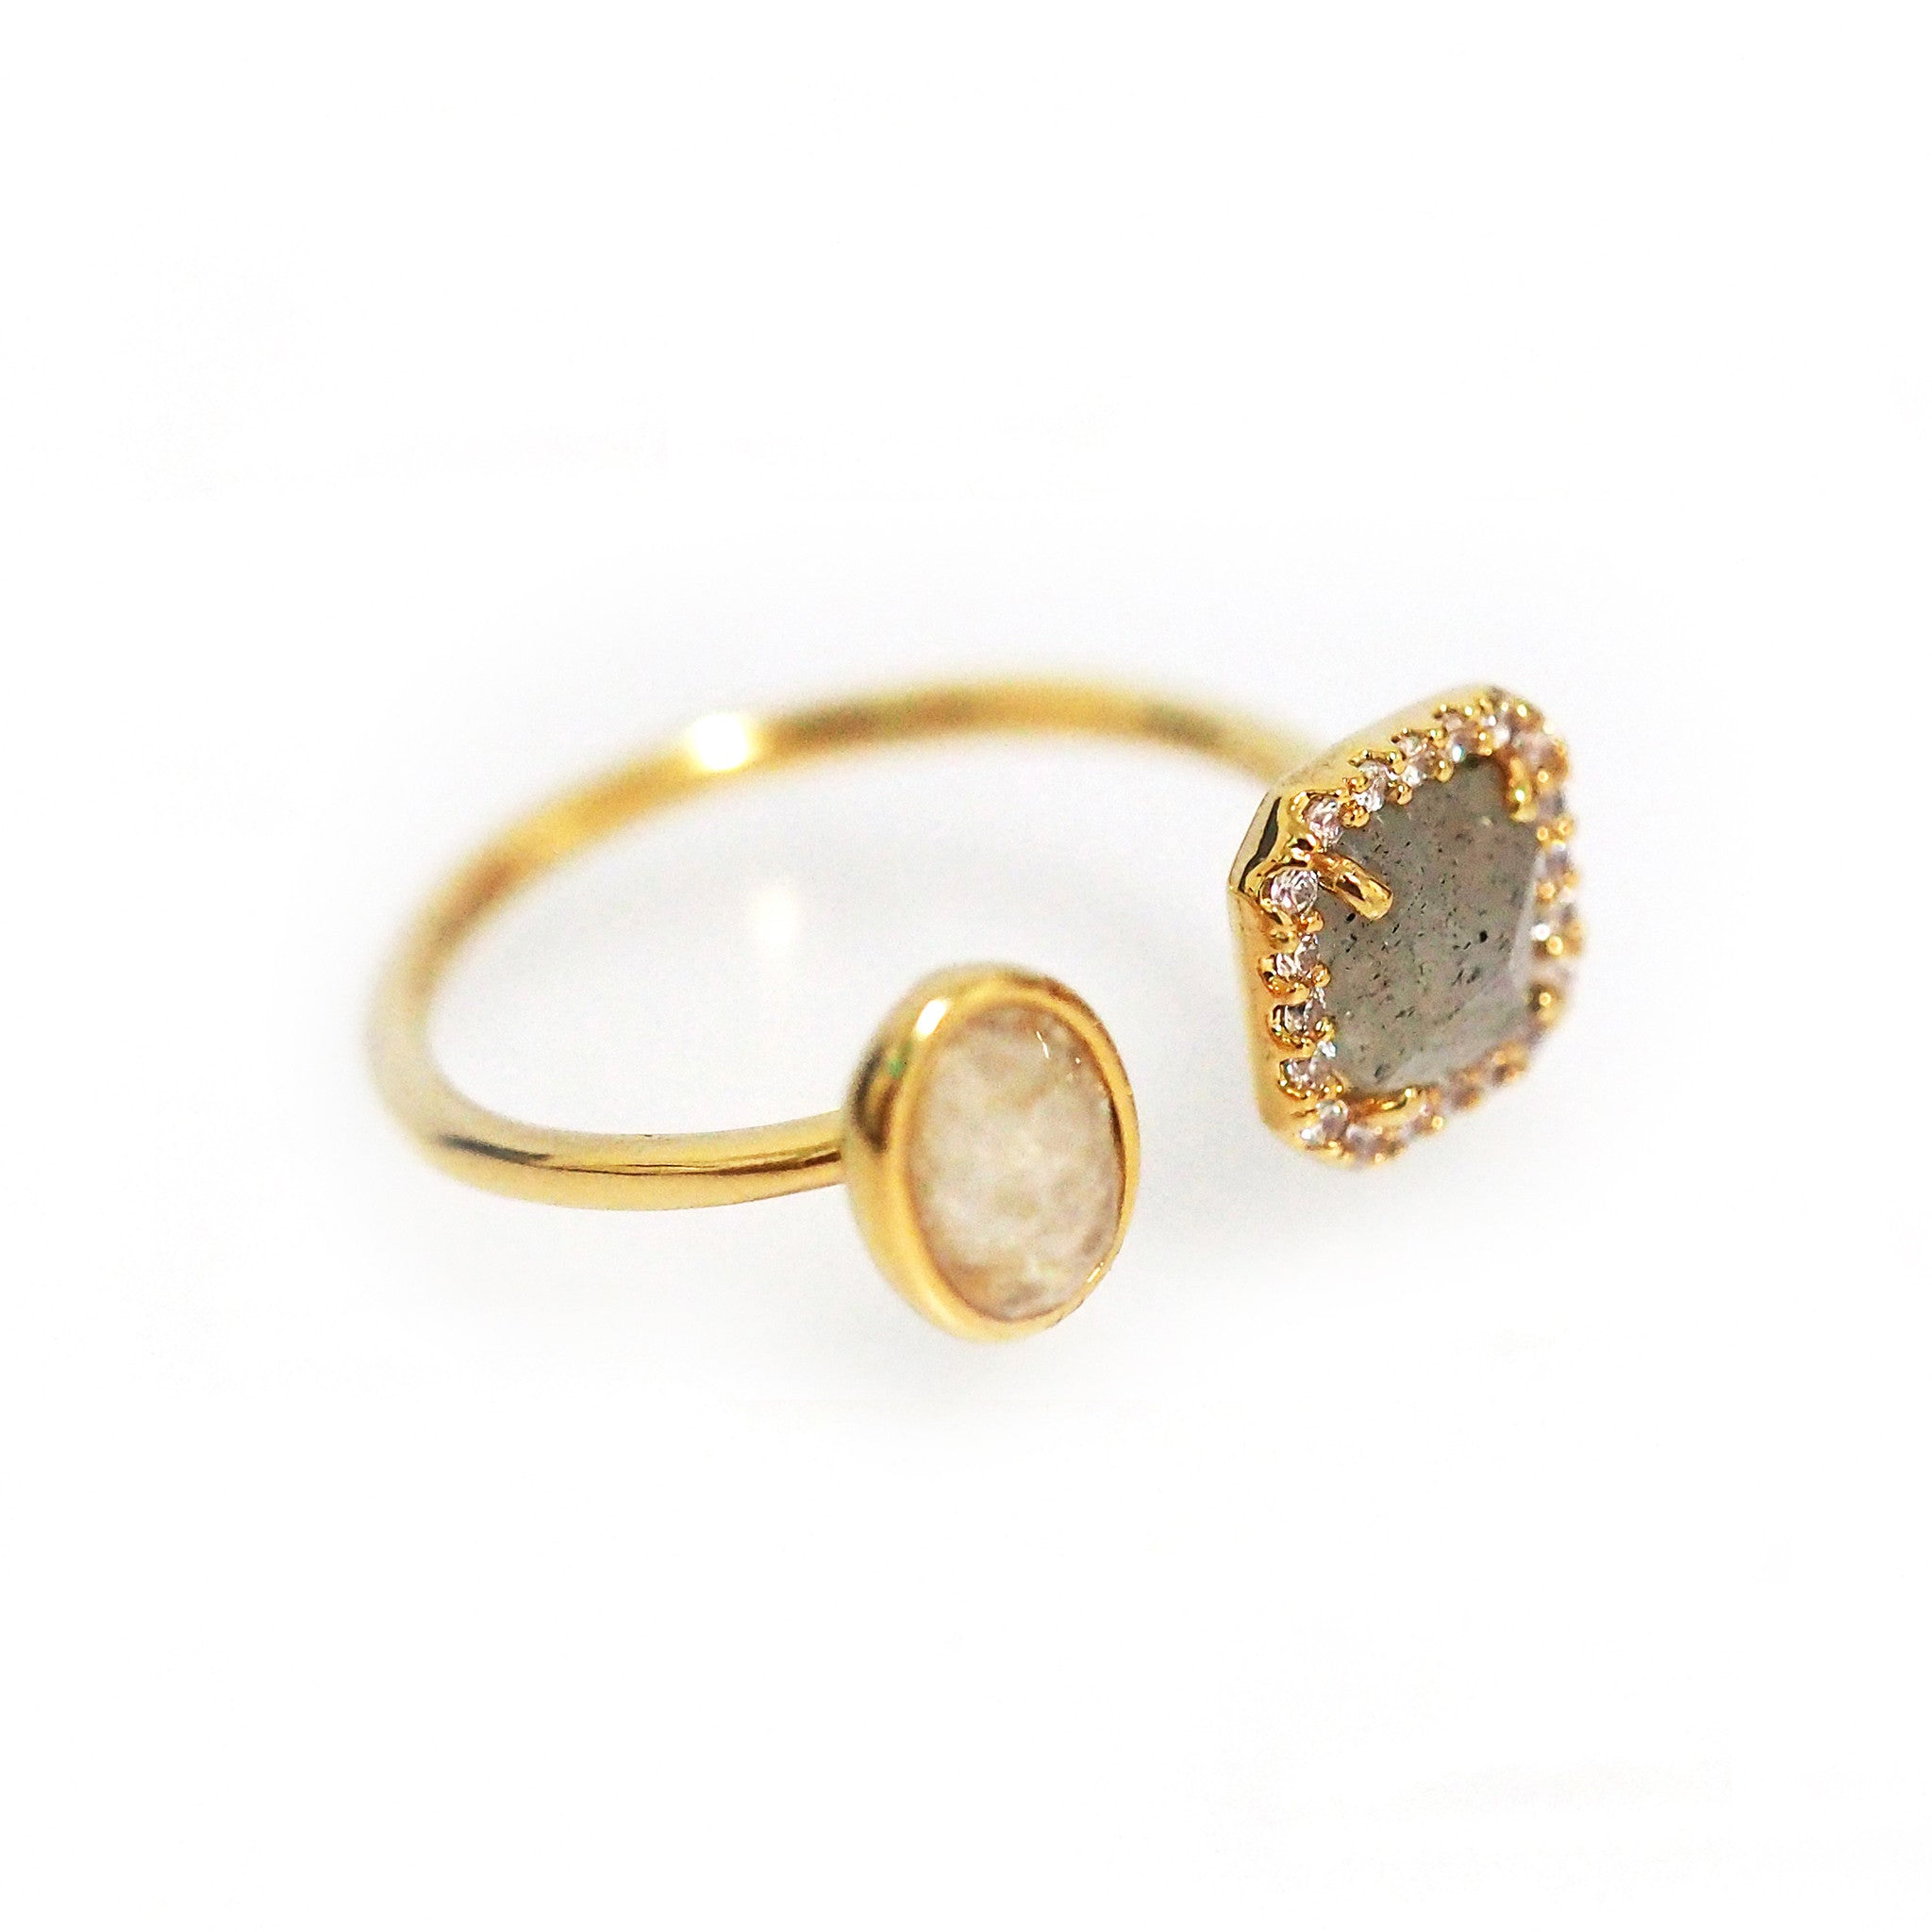 au gold minimalist rings ring on zoom sale fine solid listing fullxfull minimal rose il small